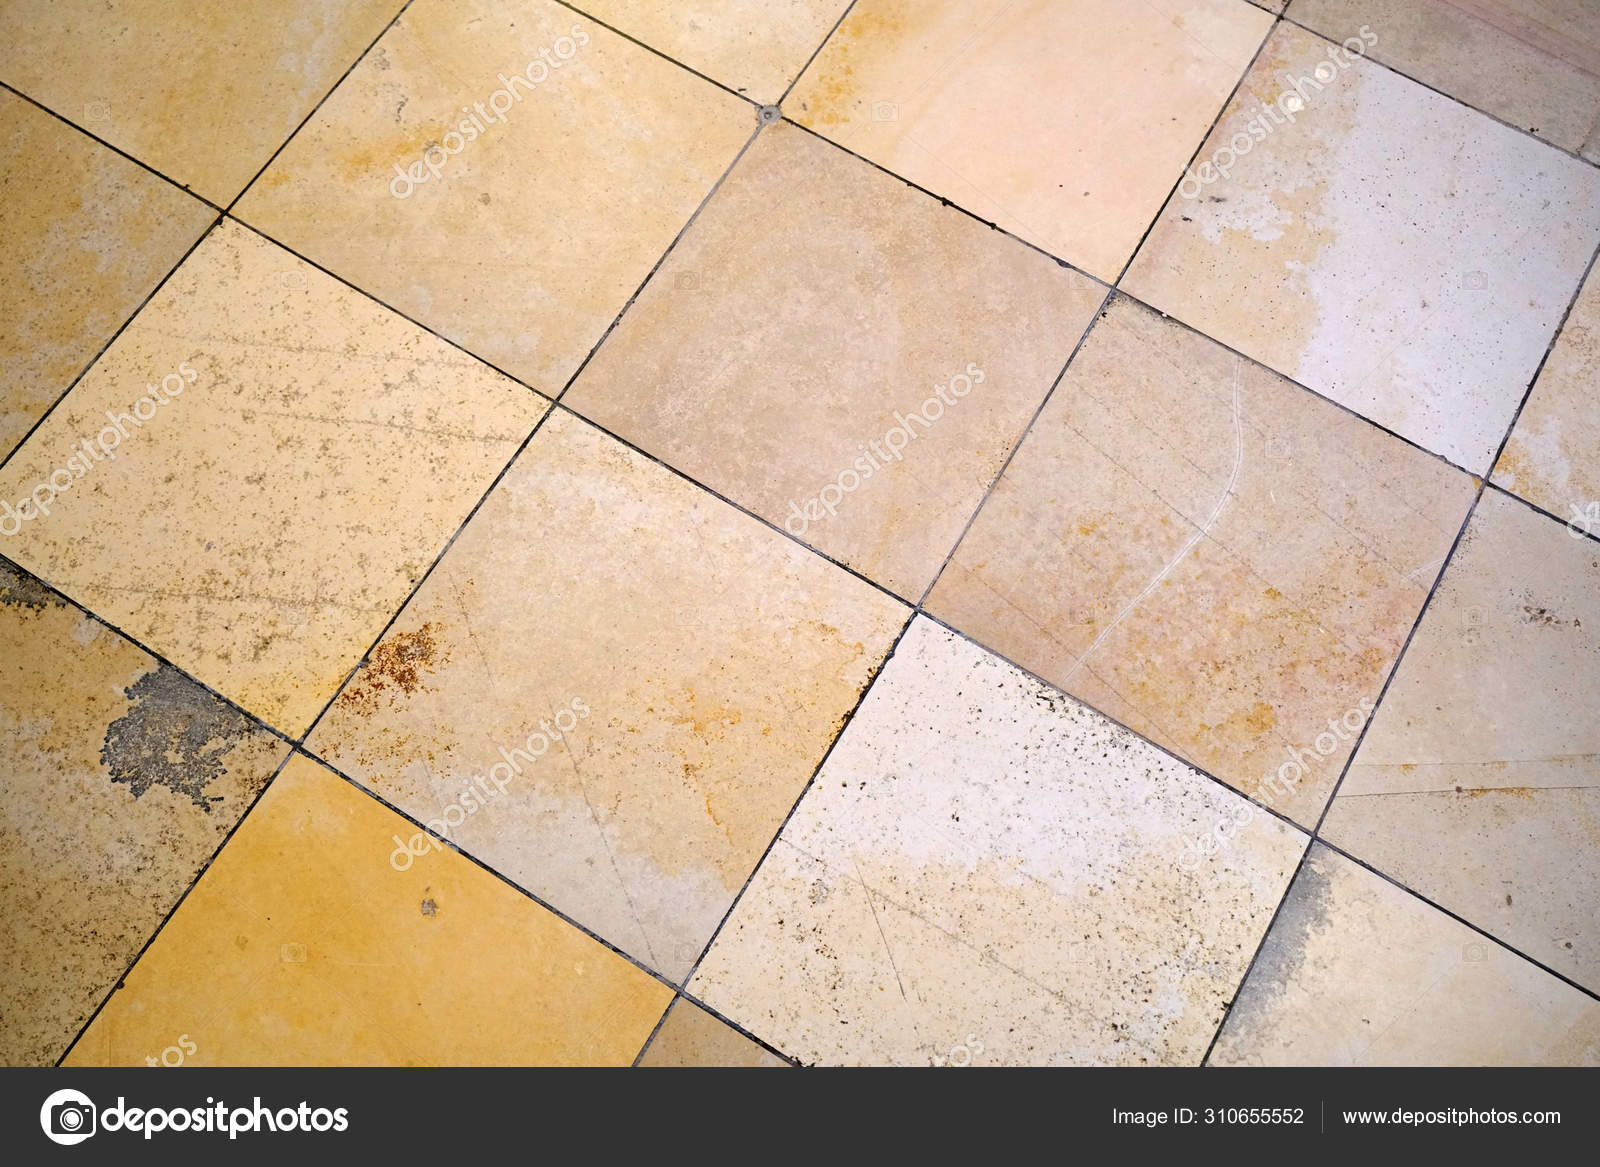 stone tile floors old buildings have been proven hundreds years stock photo image by c helfei 310655552